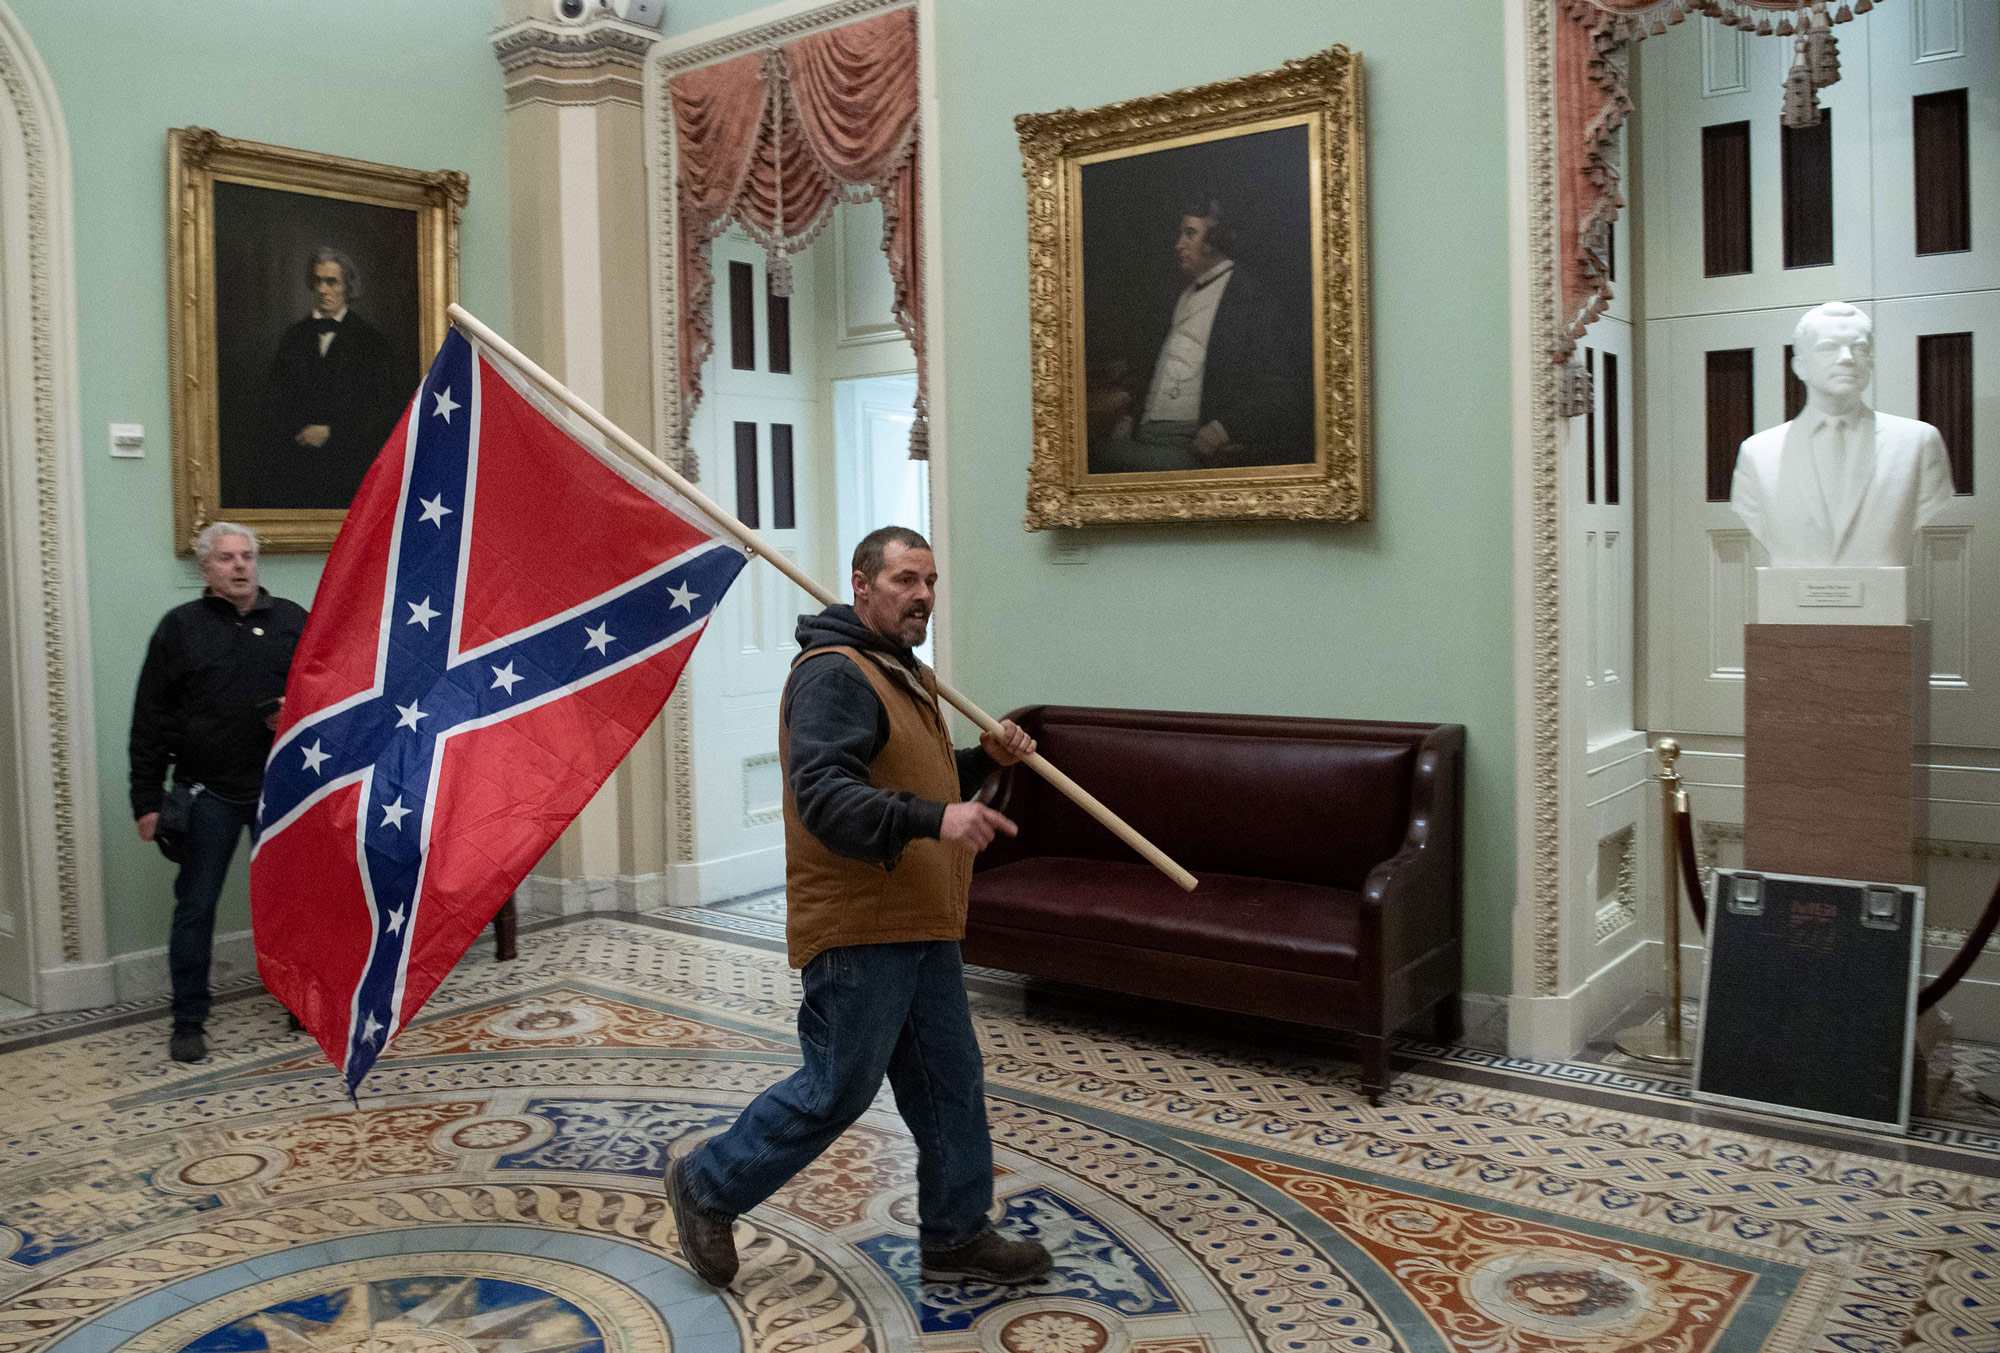 Kevin Seefried carries a confederate flag in the US Capitol Rotunda on January 6 in Washington, DC.